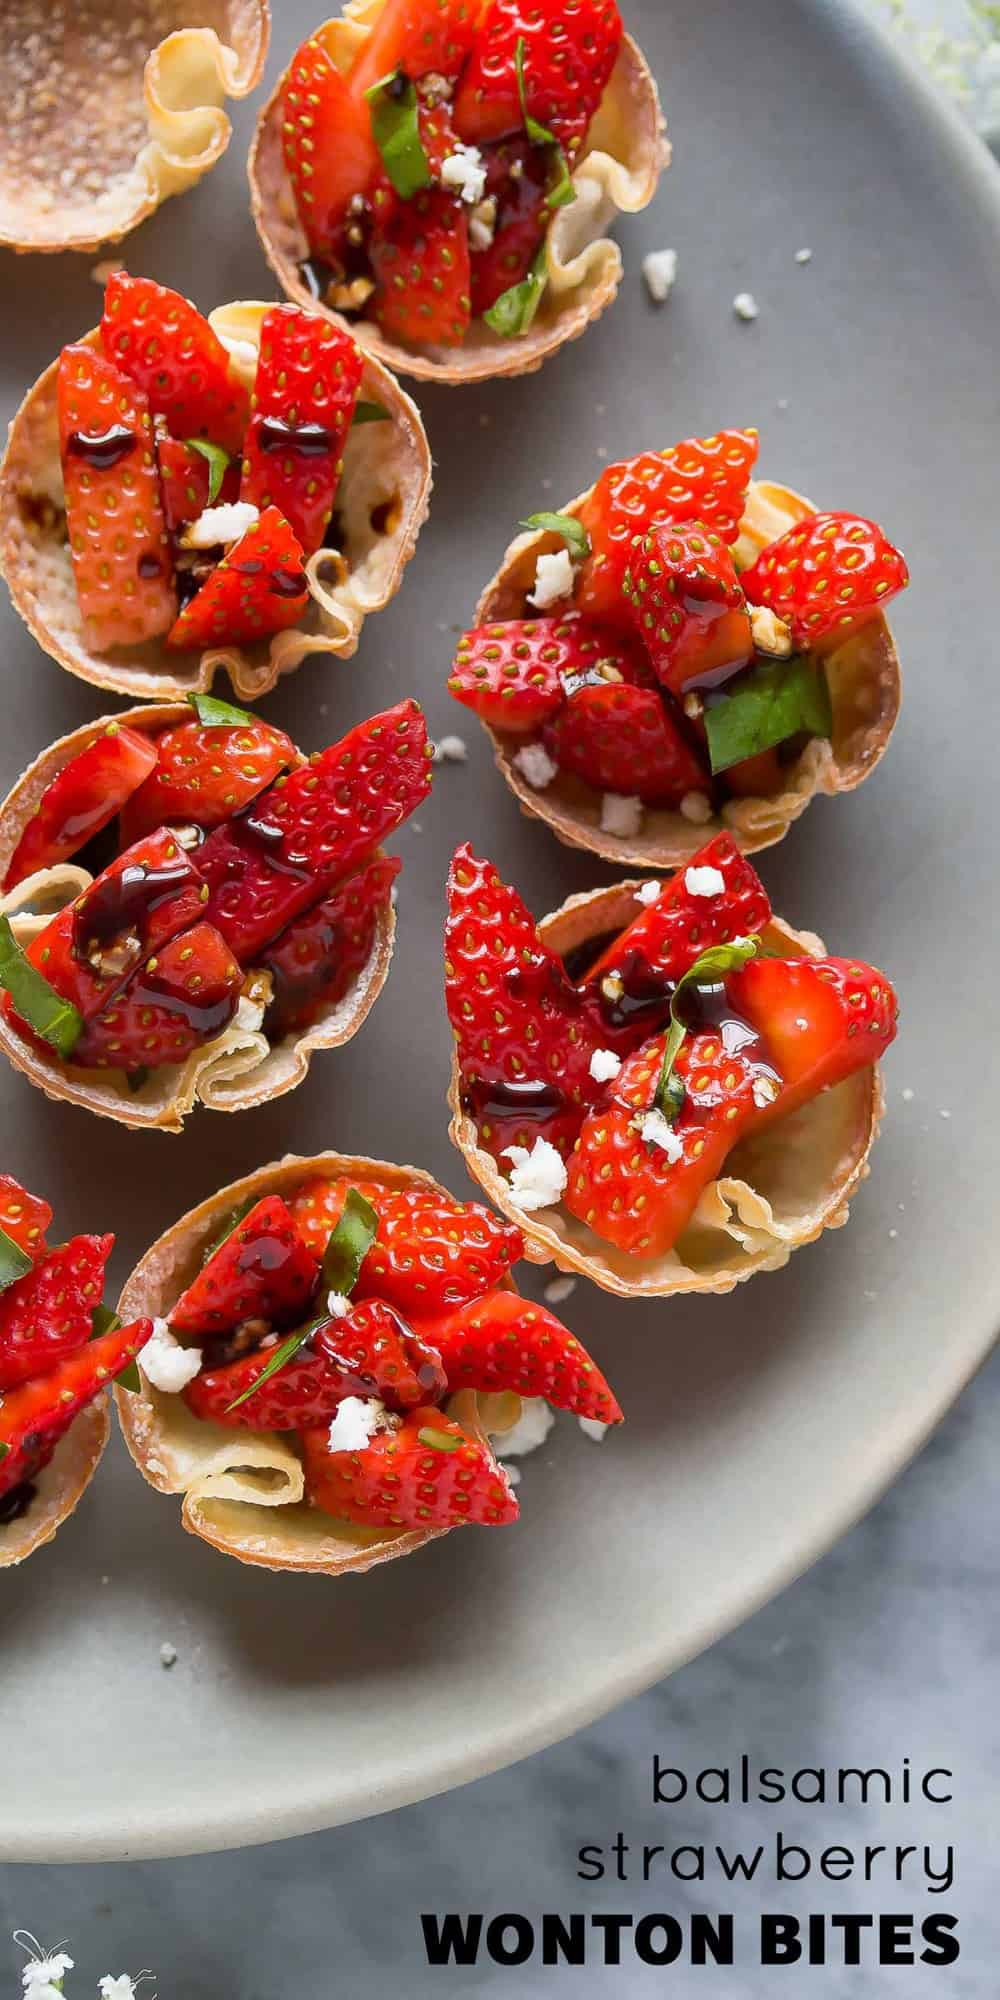 Strawberry Balsamic Bites with Feta and Basil, a lighter make-ahead appetizer option for a party or shower!